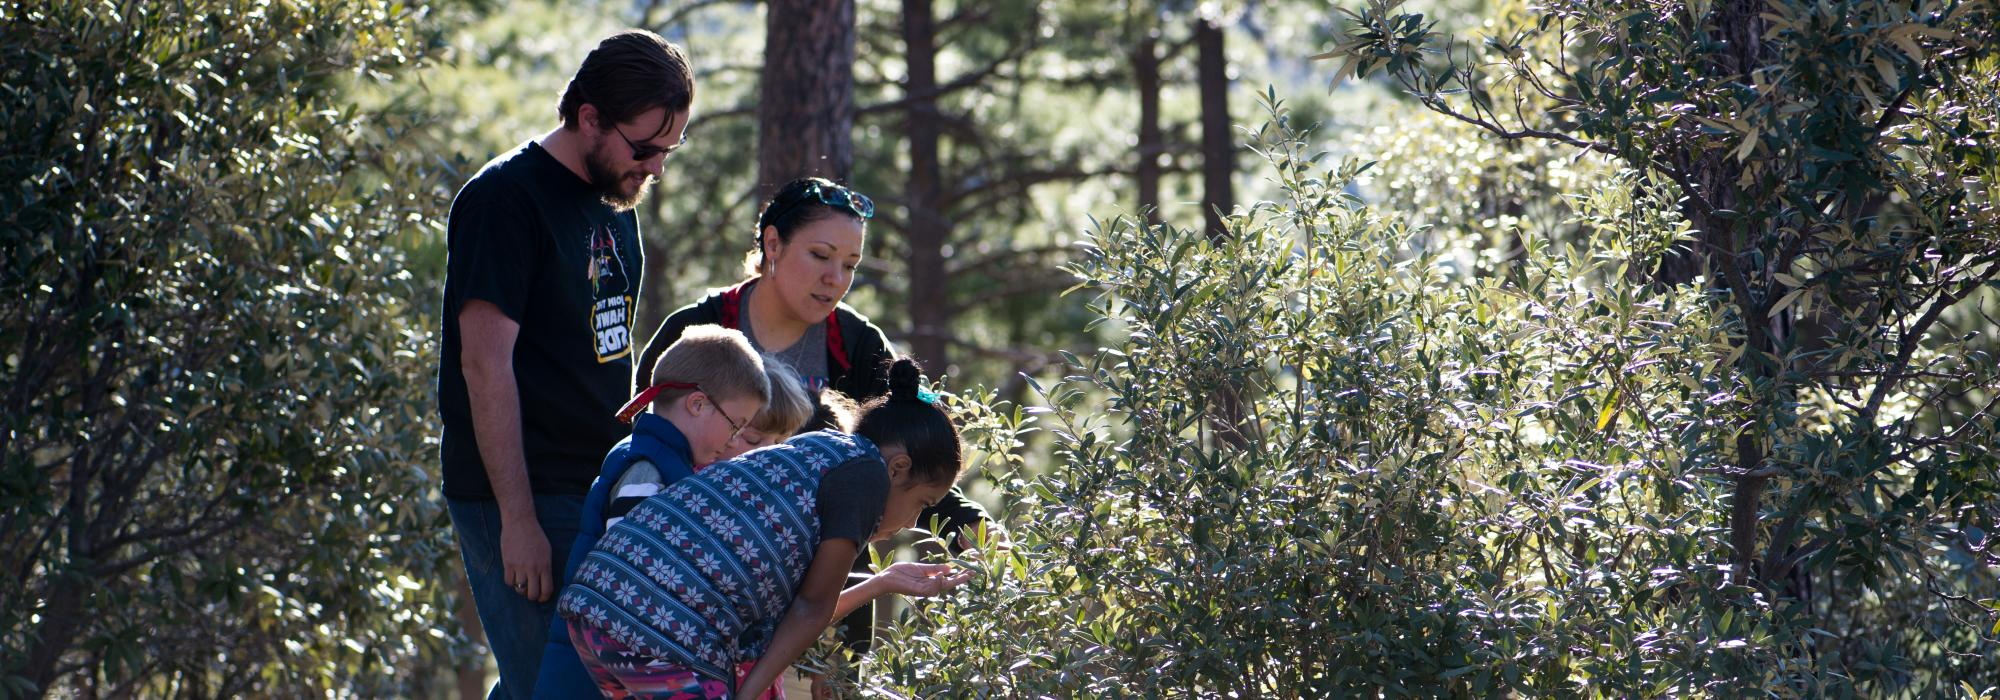 A family observes oak leaf phenology in Arizona.